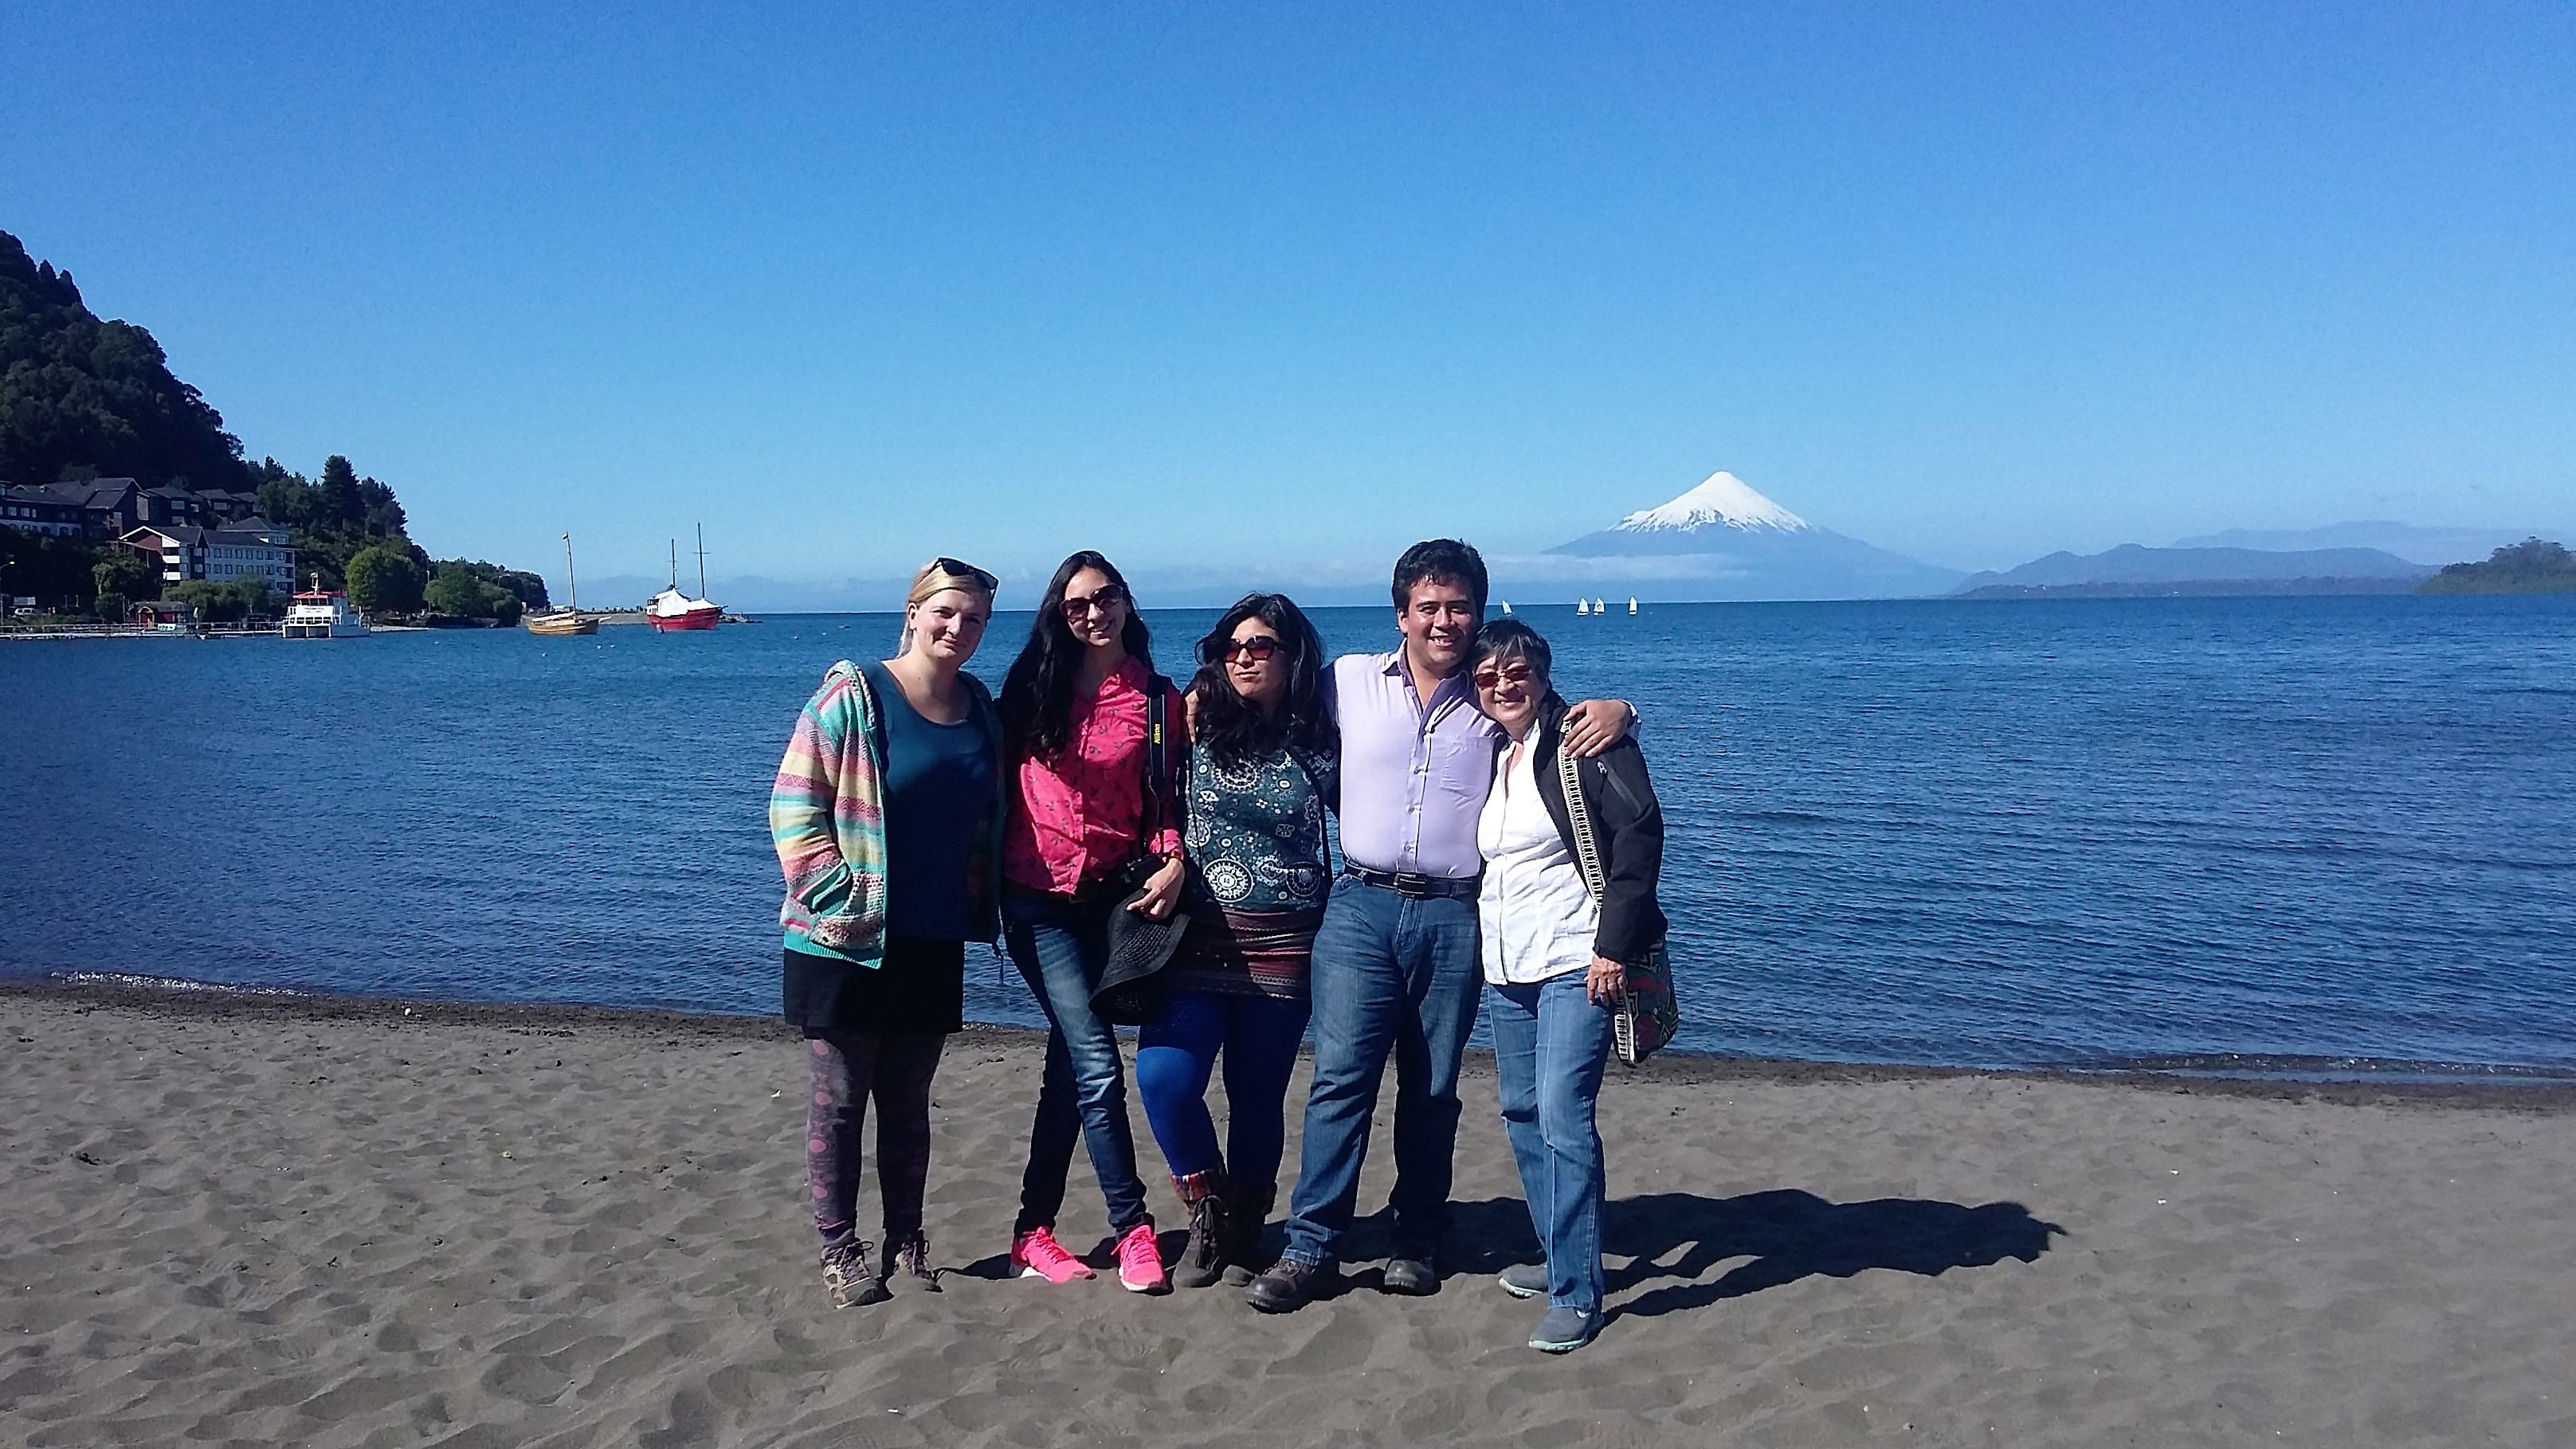 Helen Mack Chang visits the Campus Austral in Valdivia, Chile